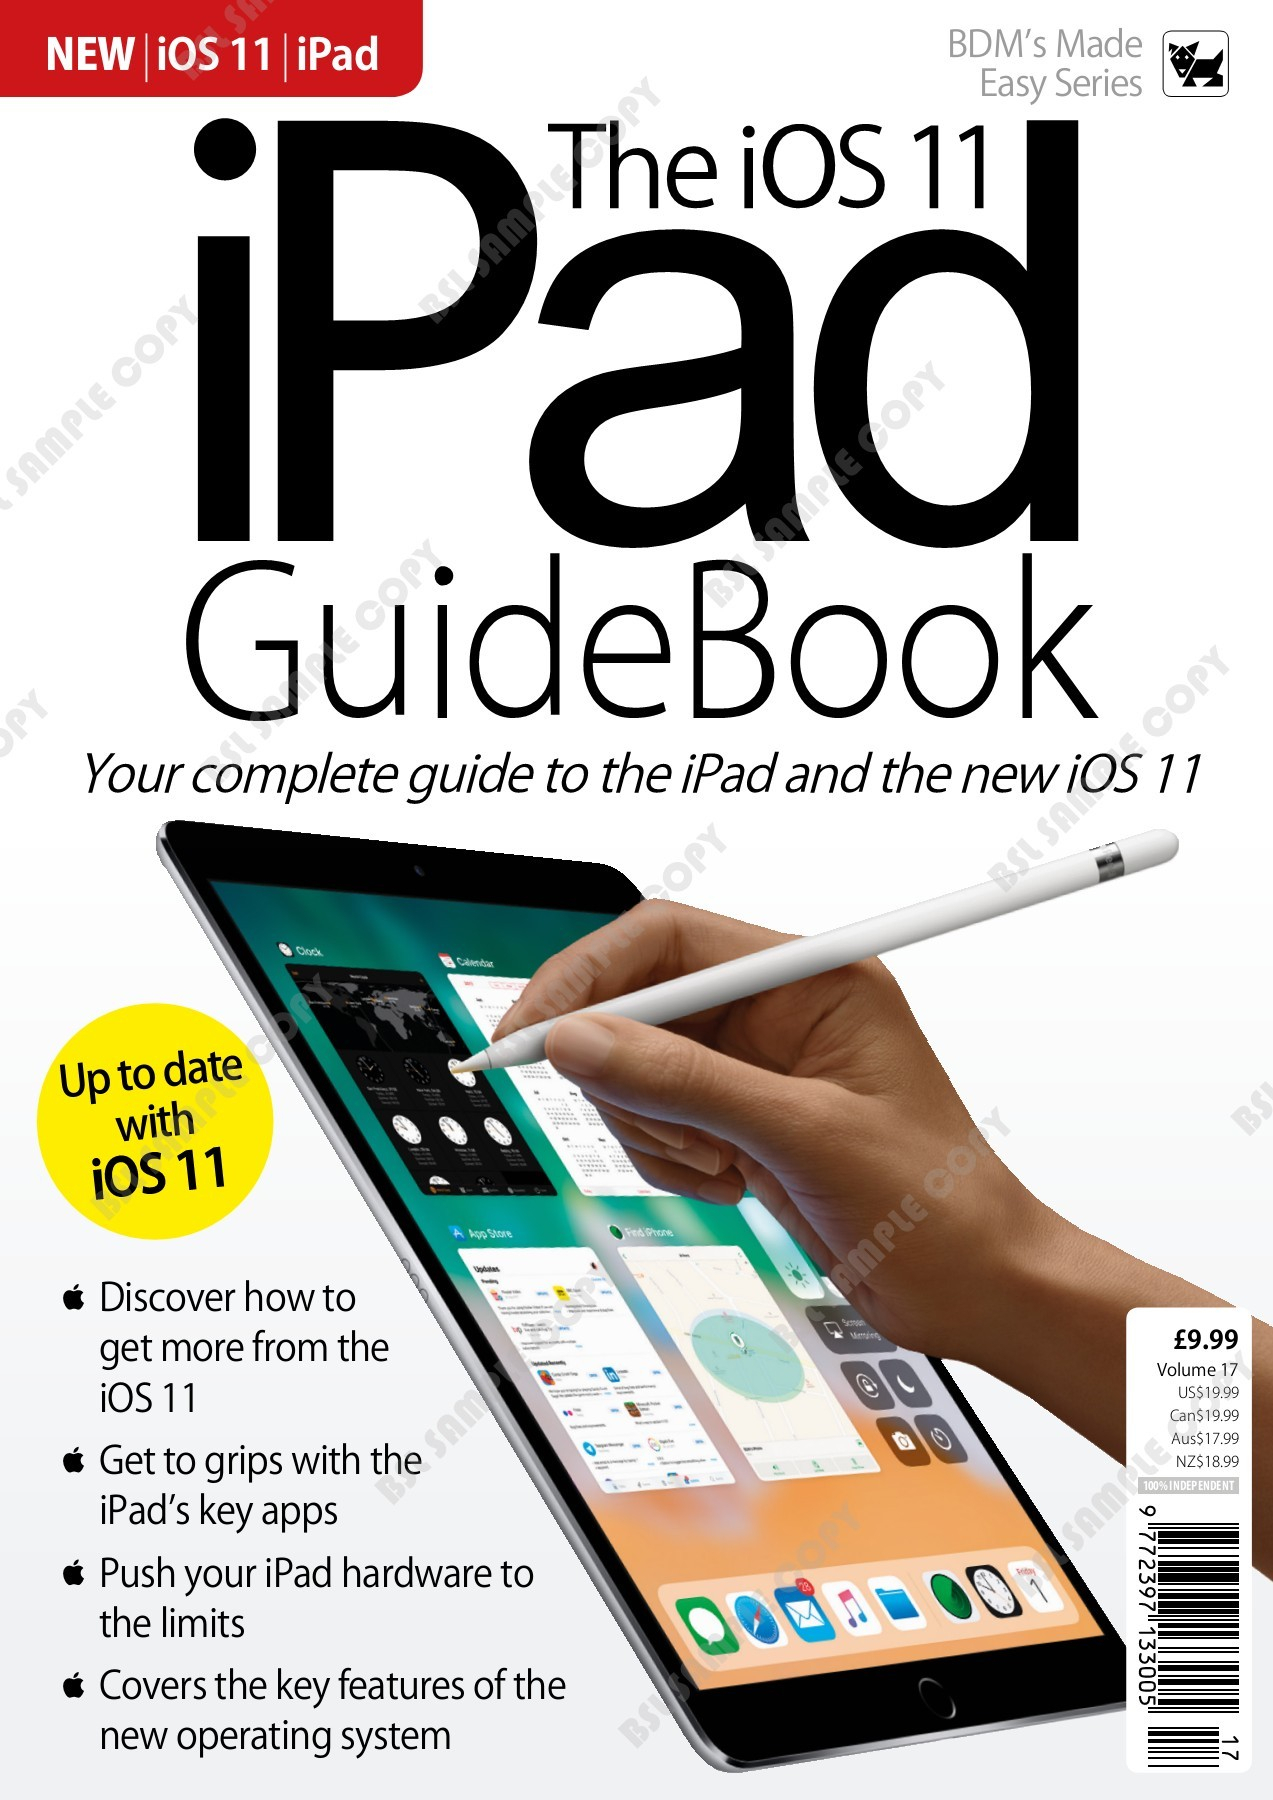 Ios11 Ipad Guidebook Pages 1  50  Text Version | Fliphtml5 regarding Iphone Calendar Deleted Events Reappear